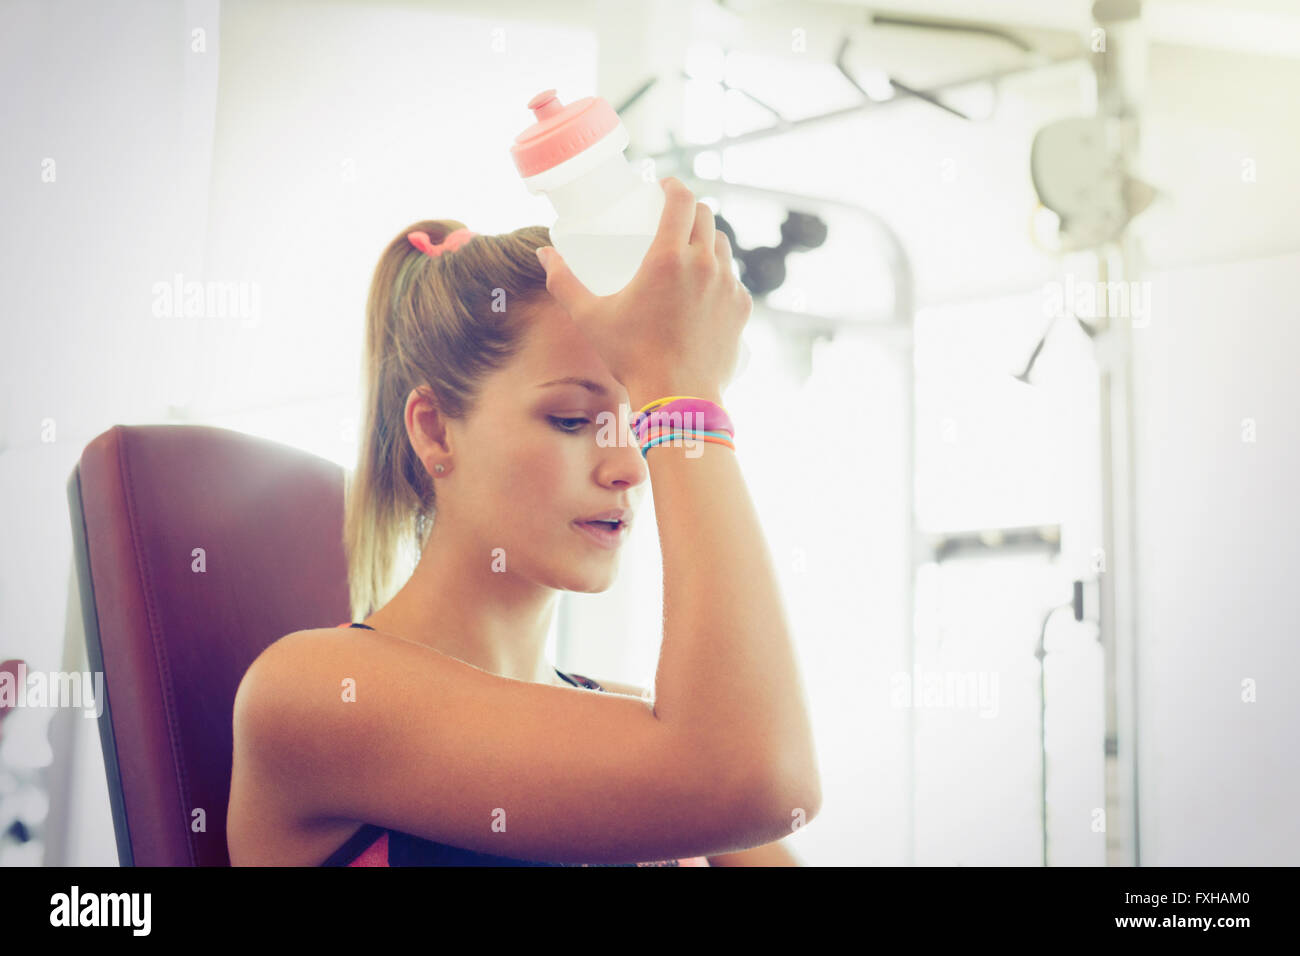 Tired woman cooling forehead with water bottle at gym - Stock Image